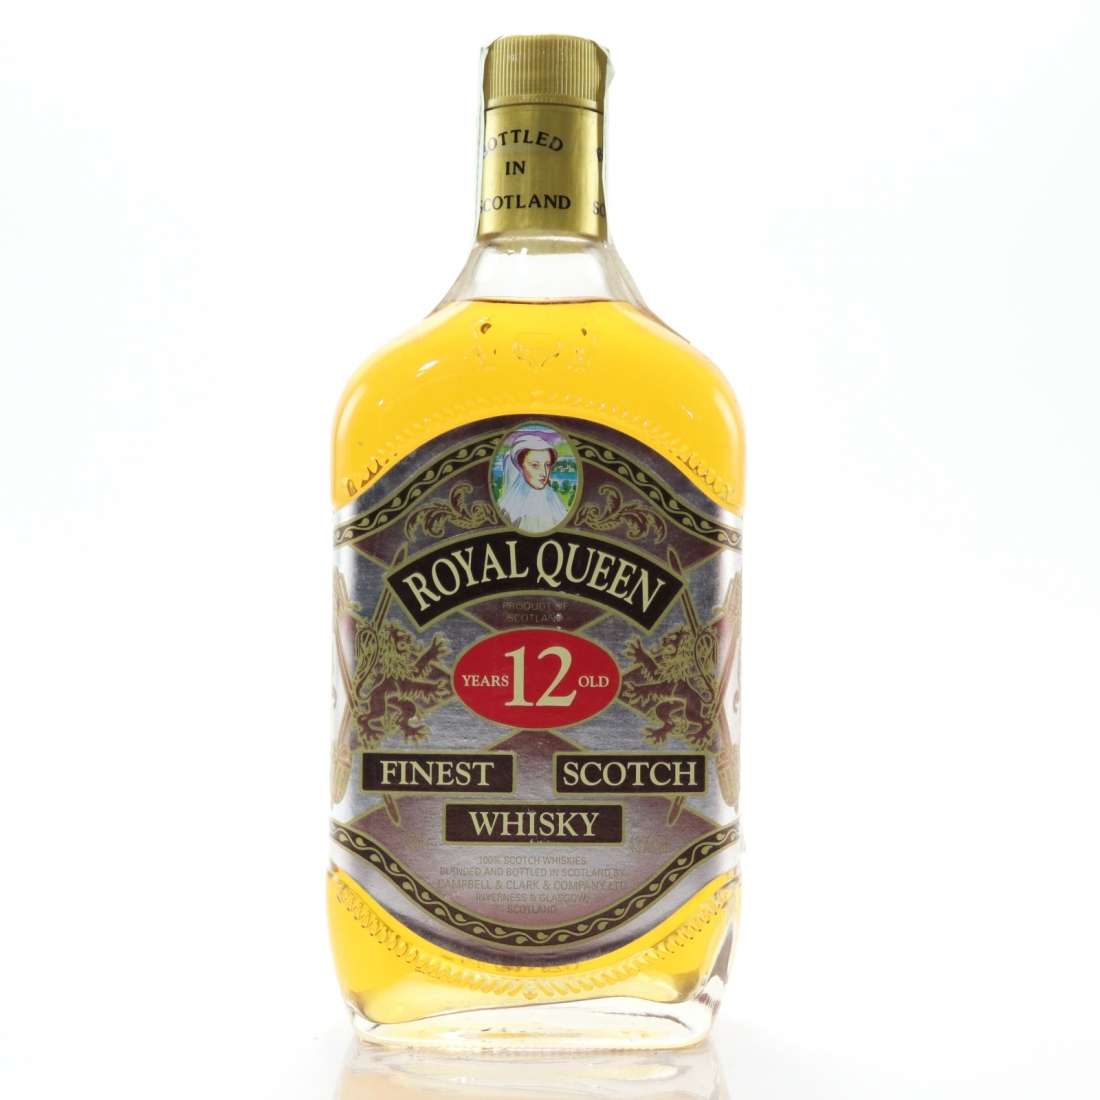 Royal Queen 12 Year Old Finest Scotch